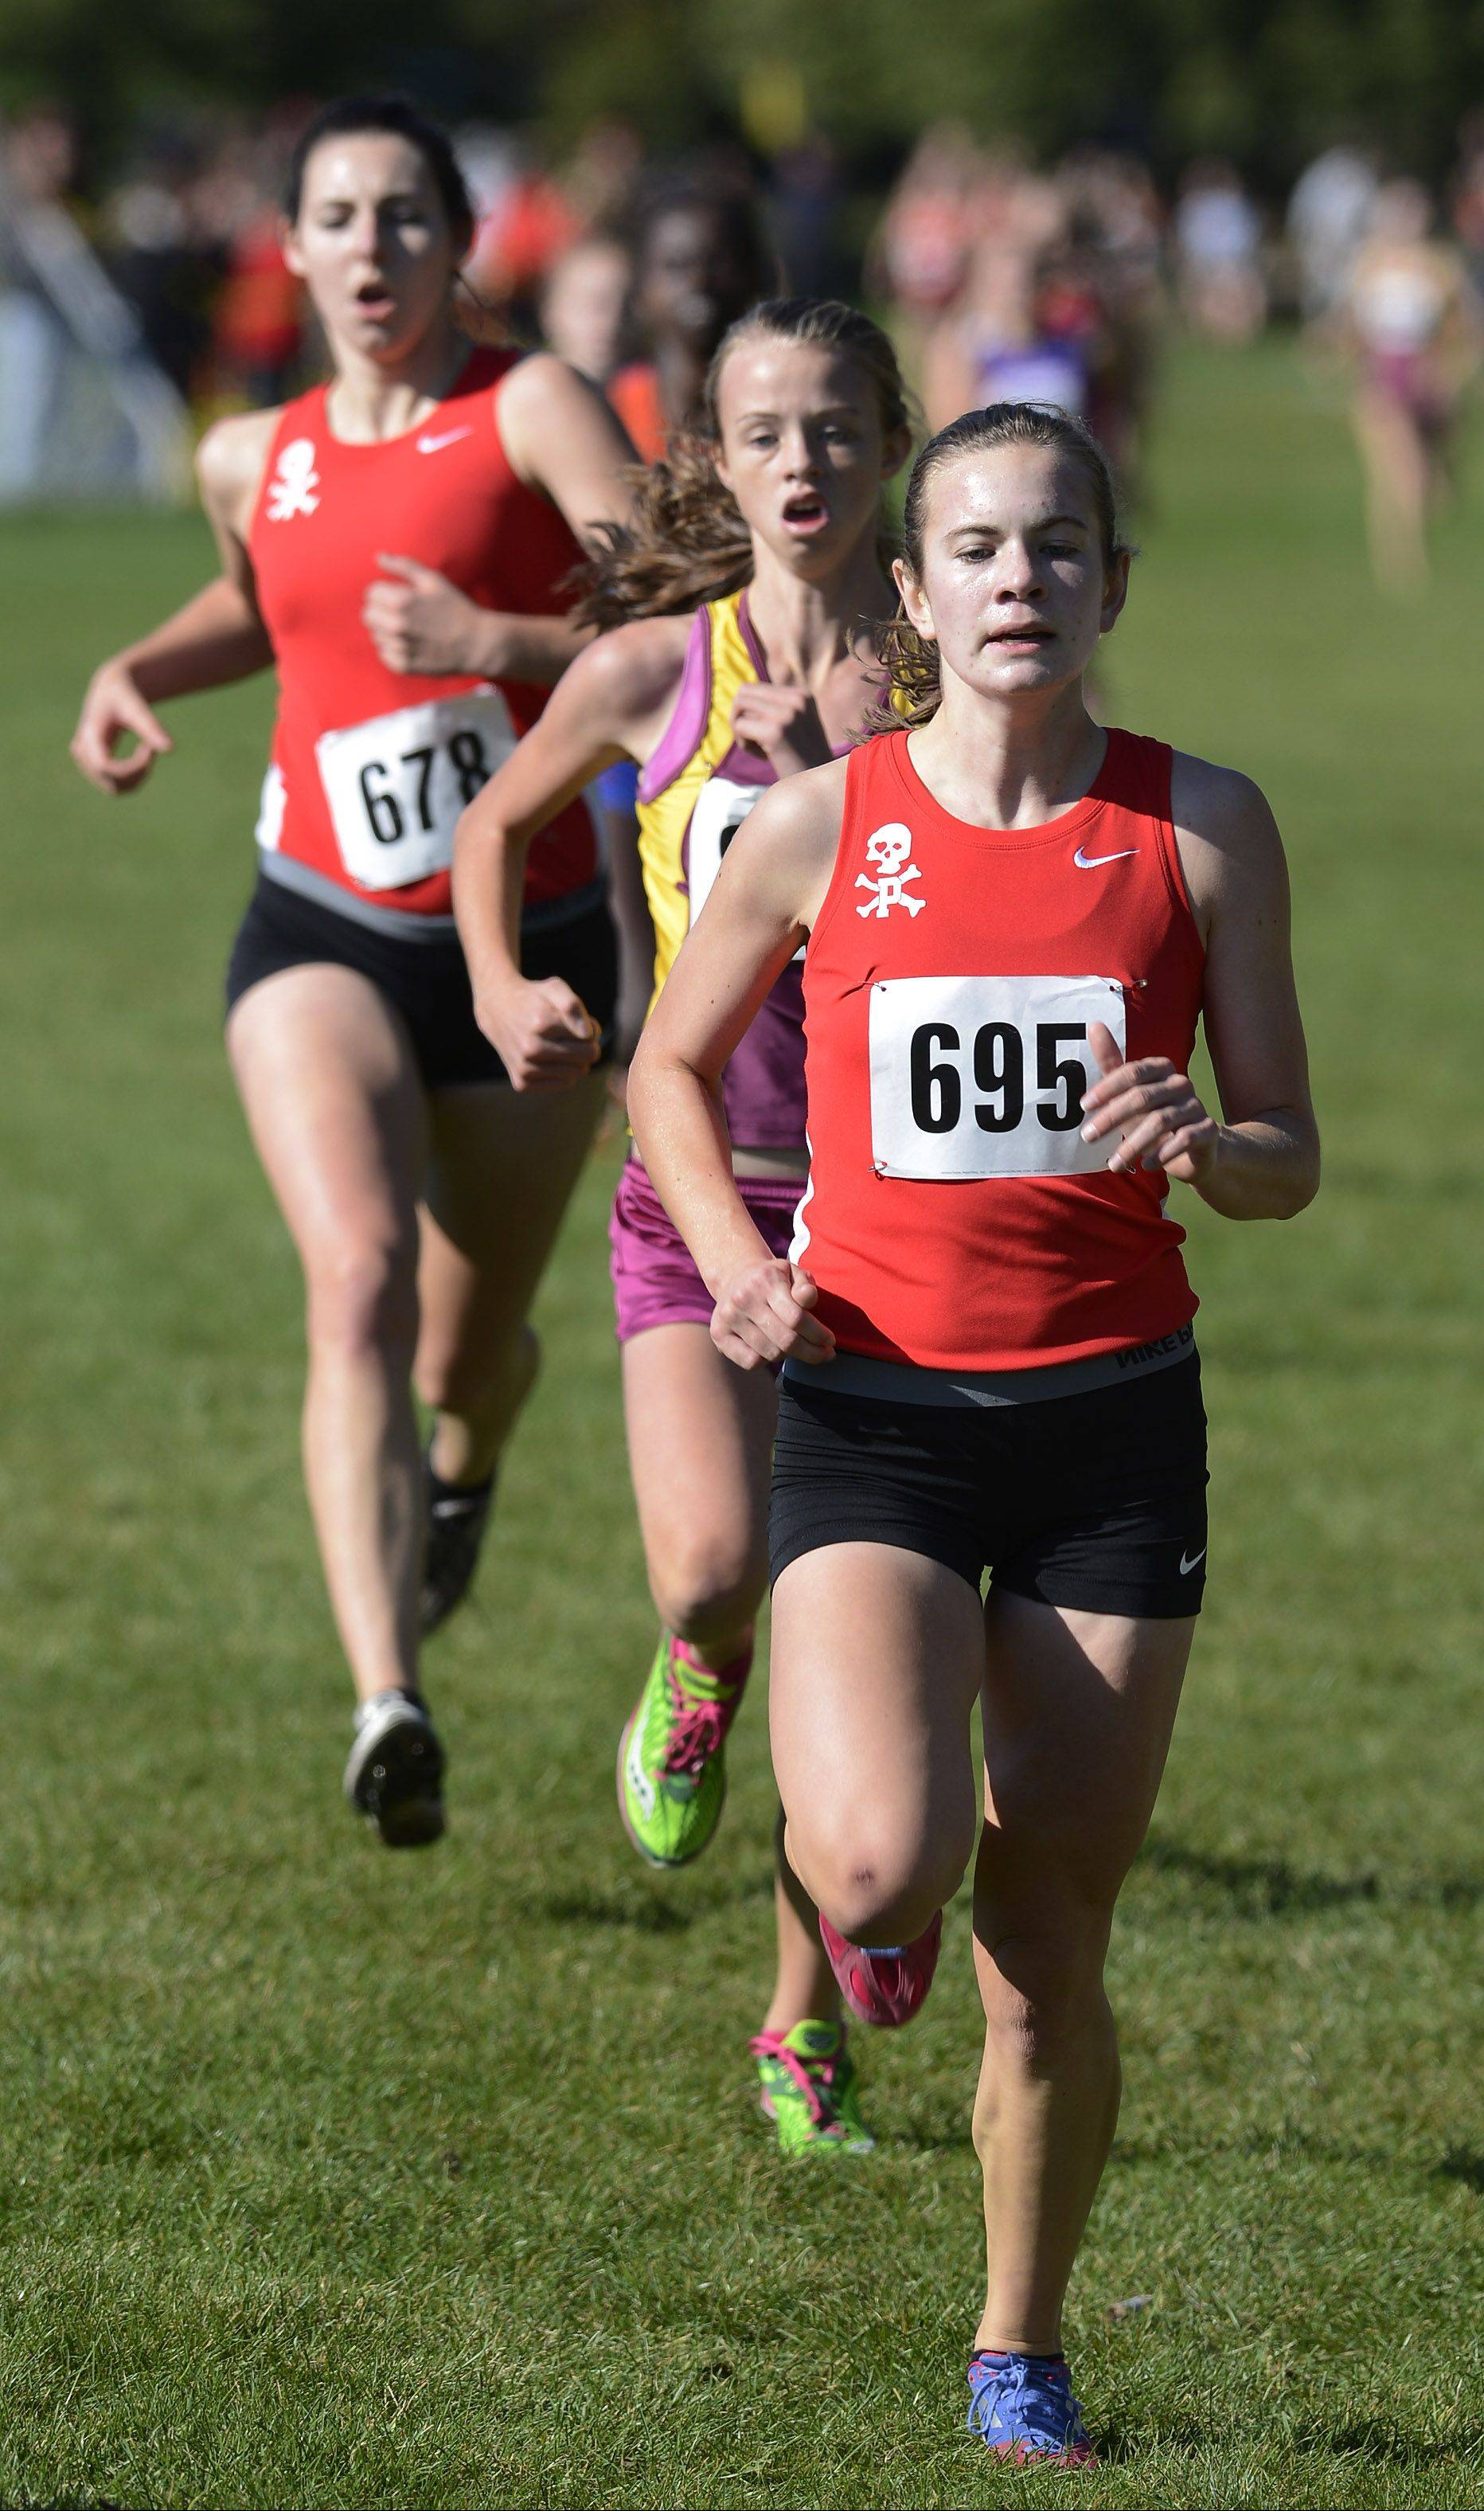 Palatine sophomore Kelly O'Brien of Palatine, front, leads Elie O'Connell of Schaumburg and Pirates senior Liz Cox during the Mid-Suburban League meet at Willow Stream Park in Buffalo Grove.